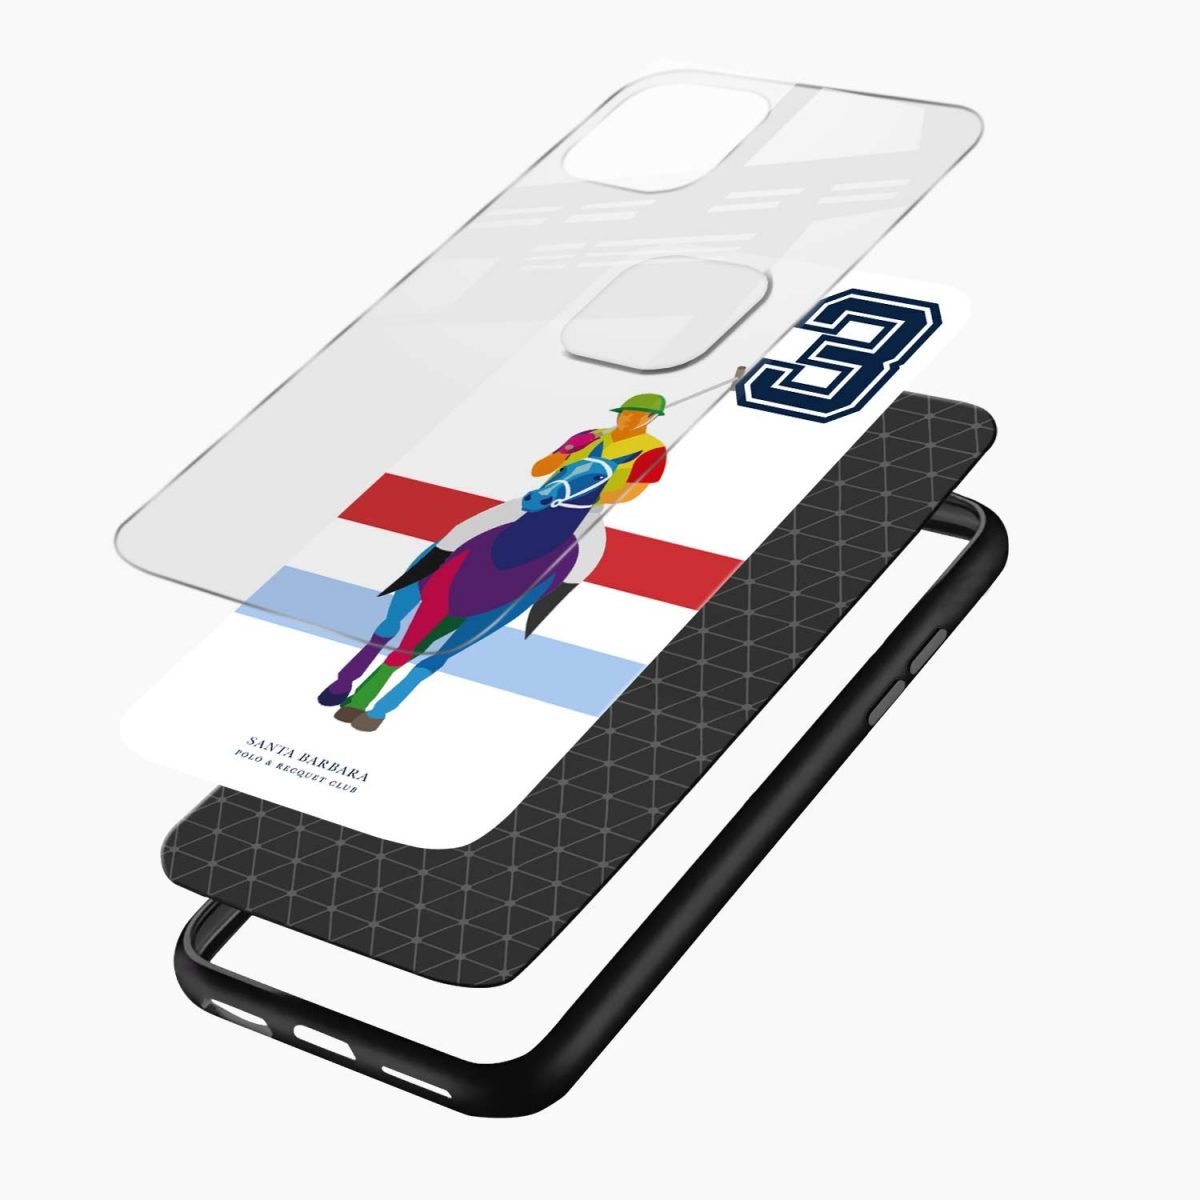 multicolor sant barbara polo iphone pro back cover layers view